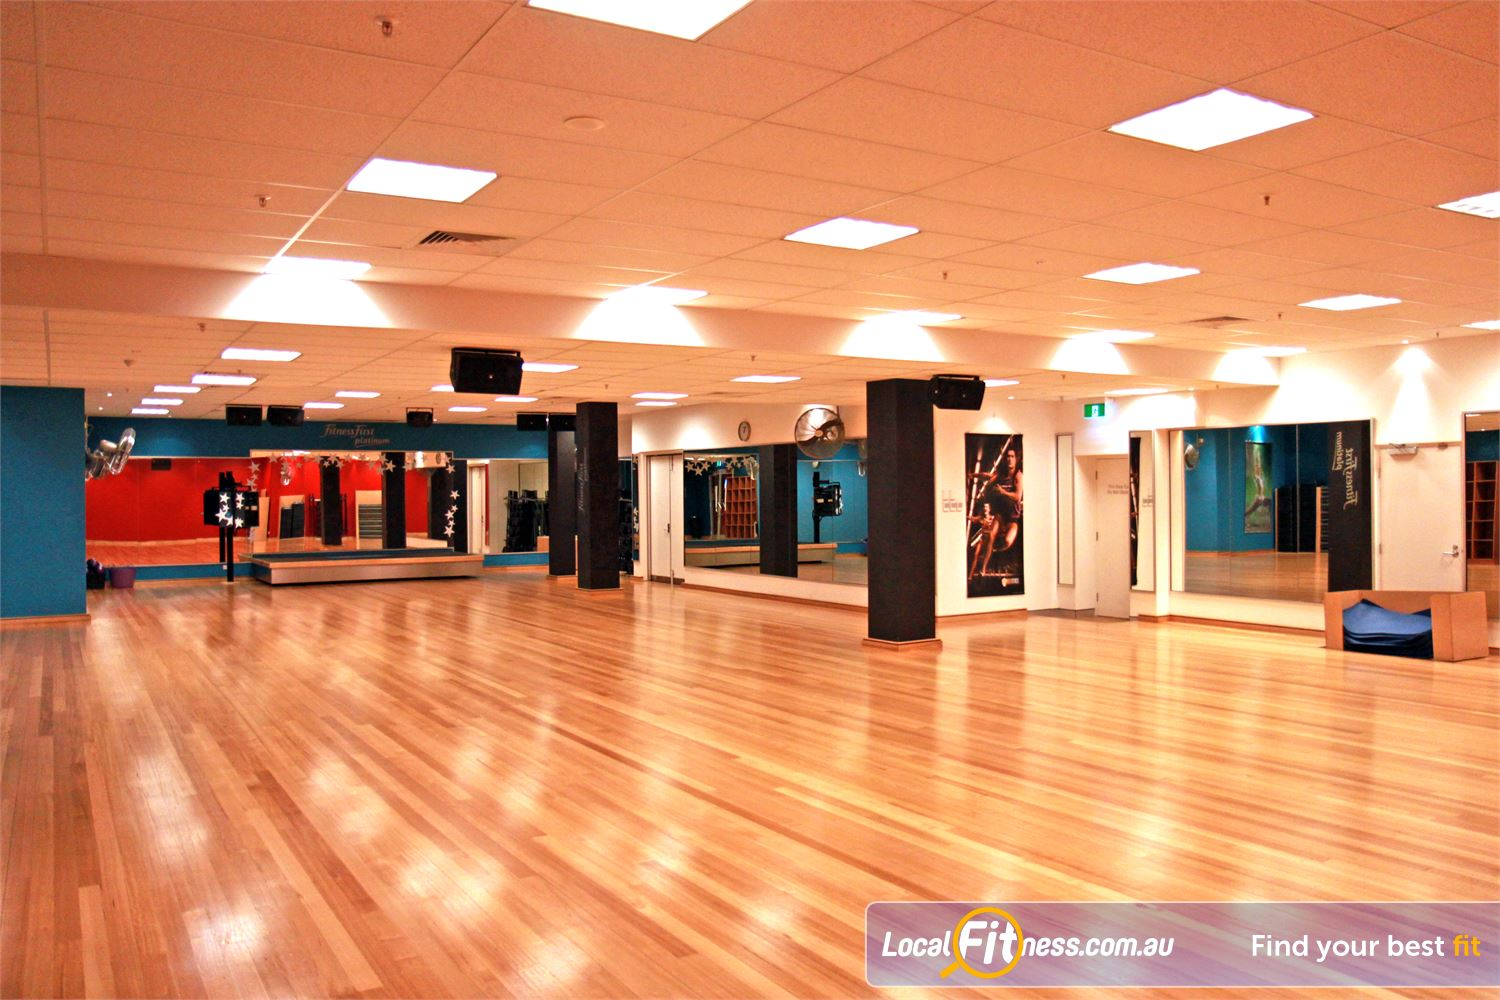 Goodlife Health Clubs Subiaco Popular classes includes Subiaco Yoga, boxing and Les Mills.